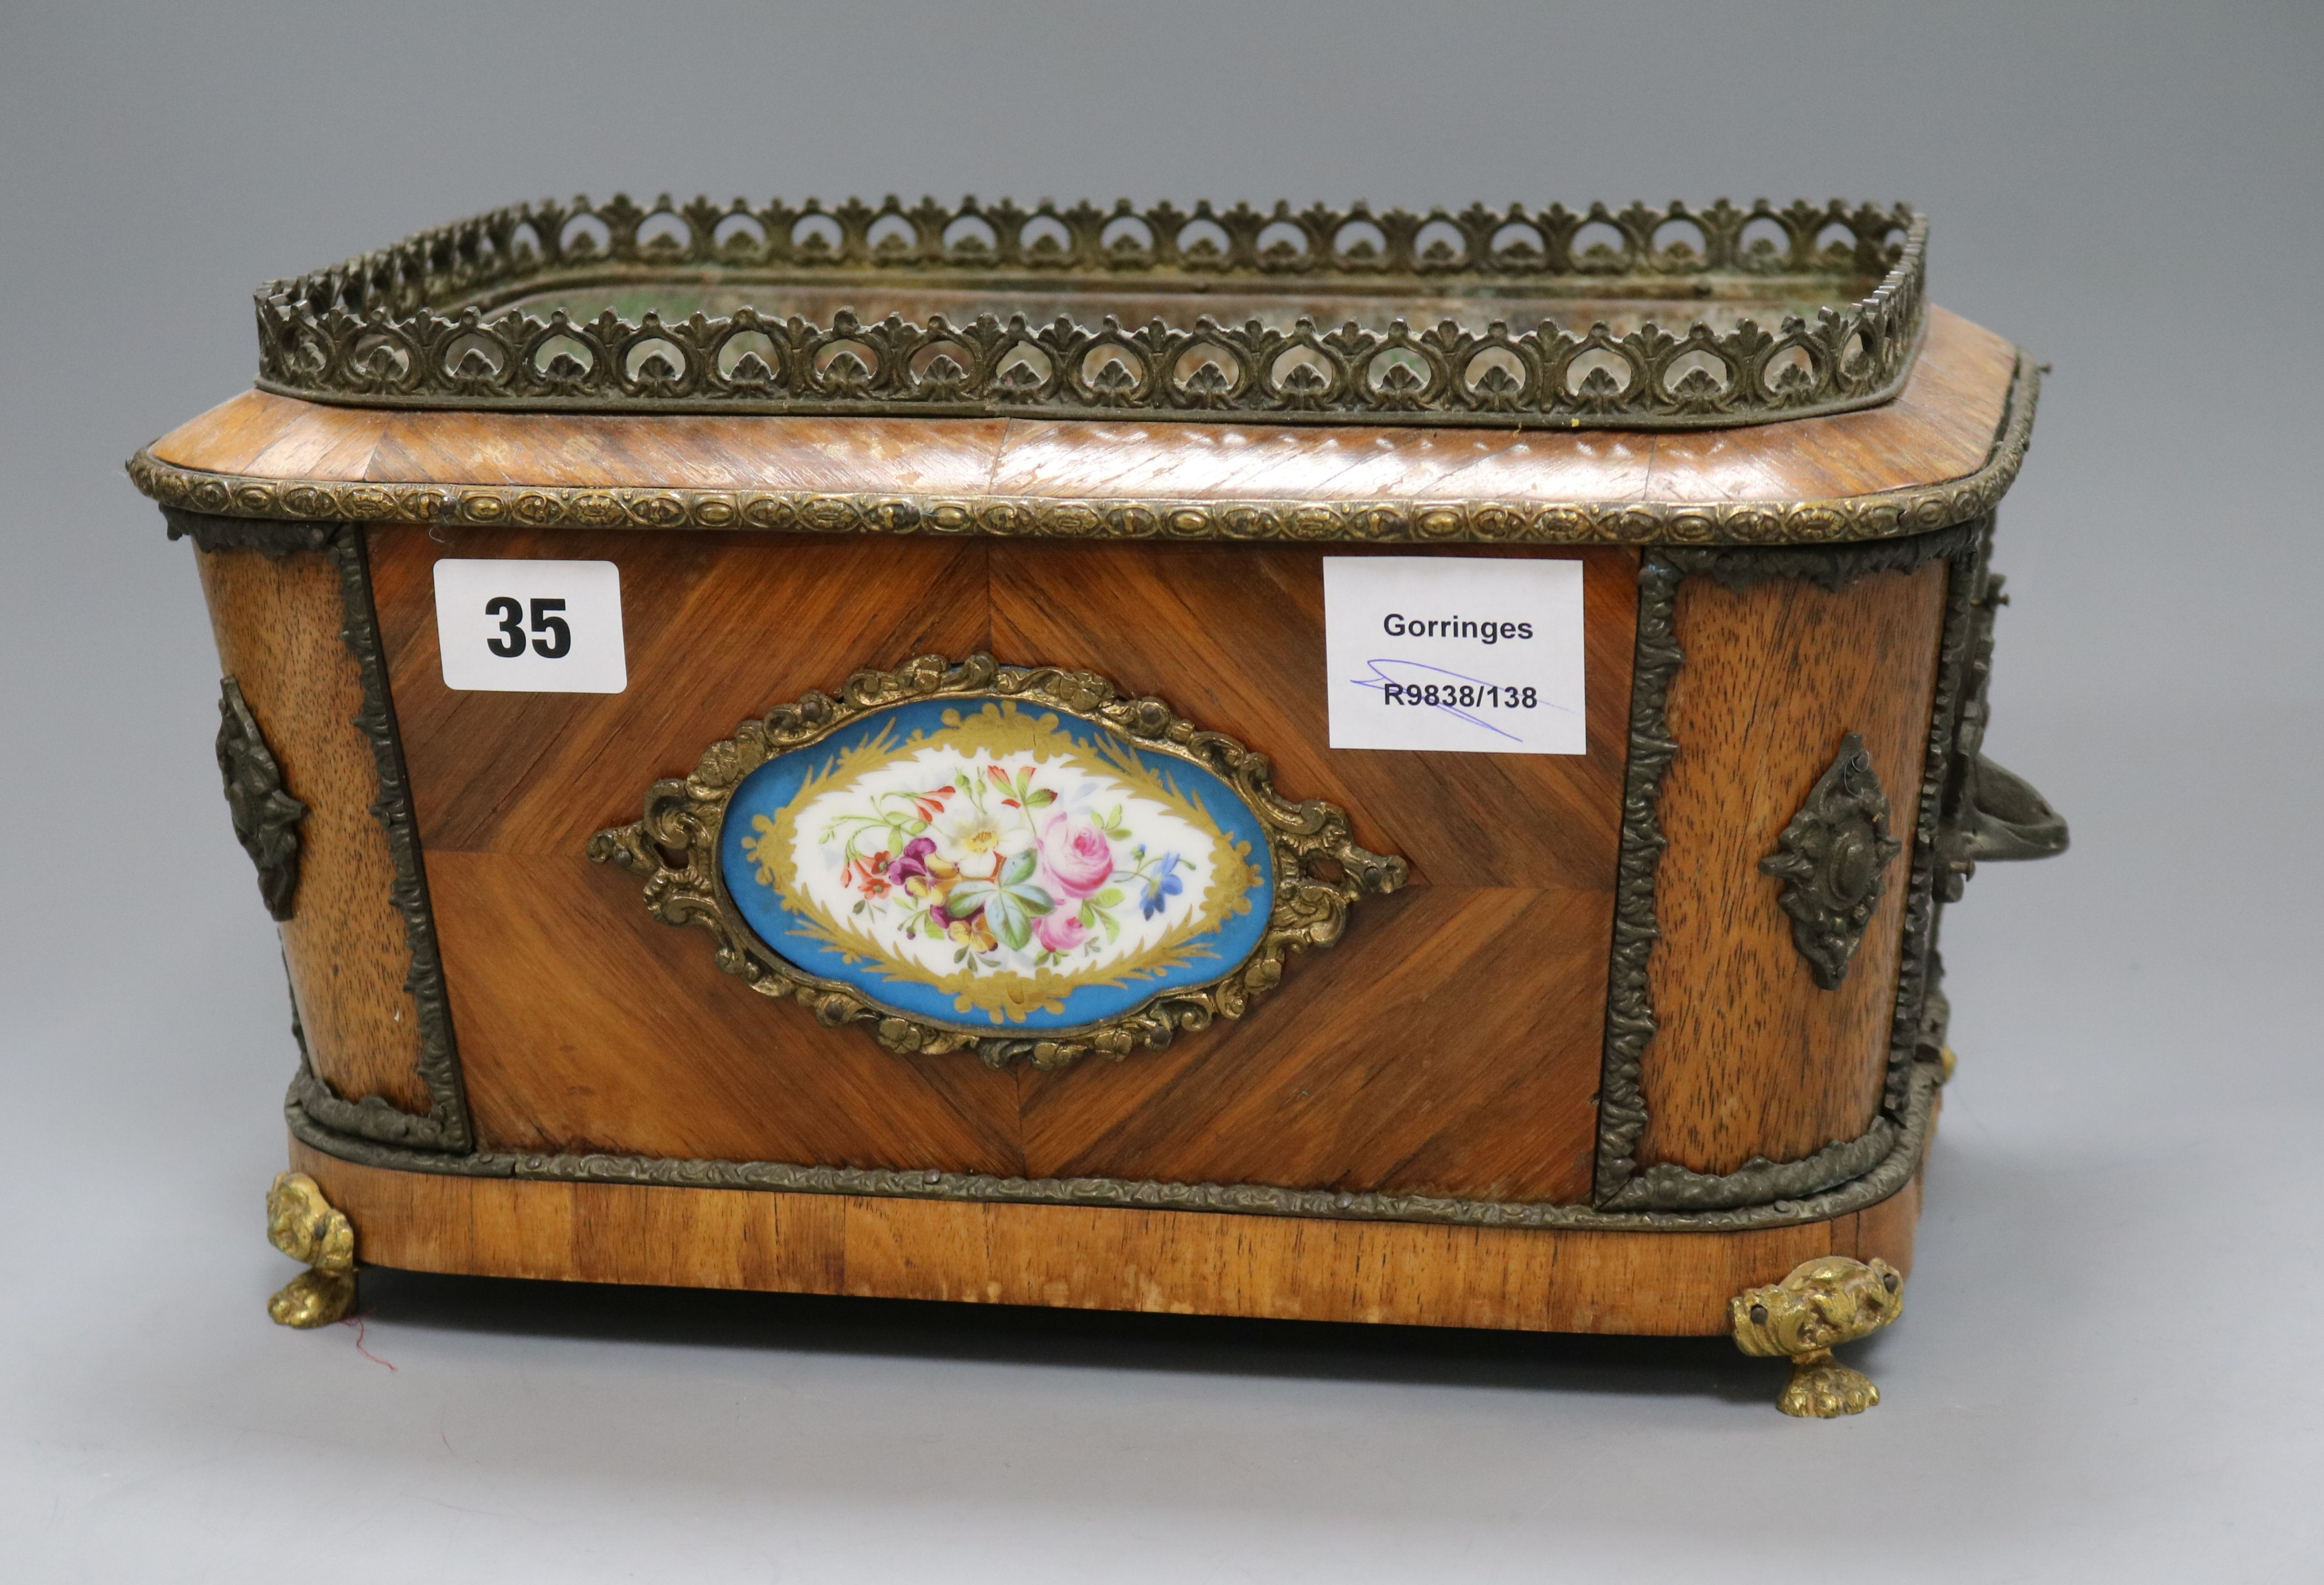 Lot 35 - A 19th century French ormolu mounted jardiniere height 18cm